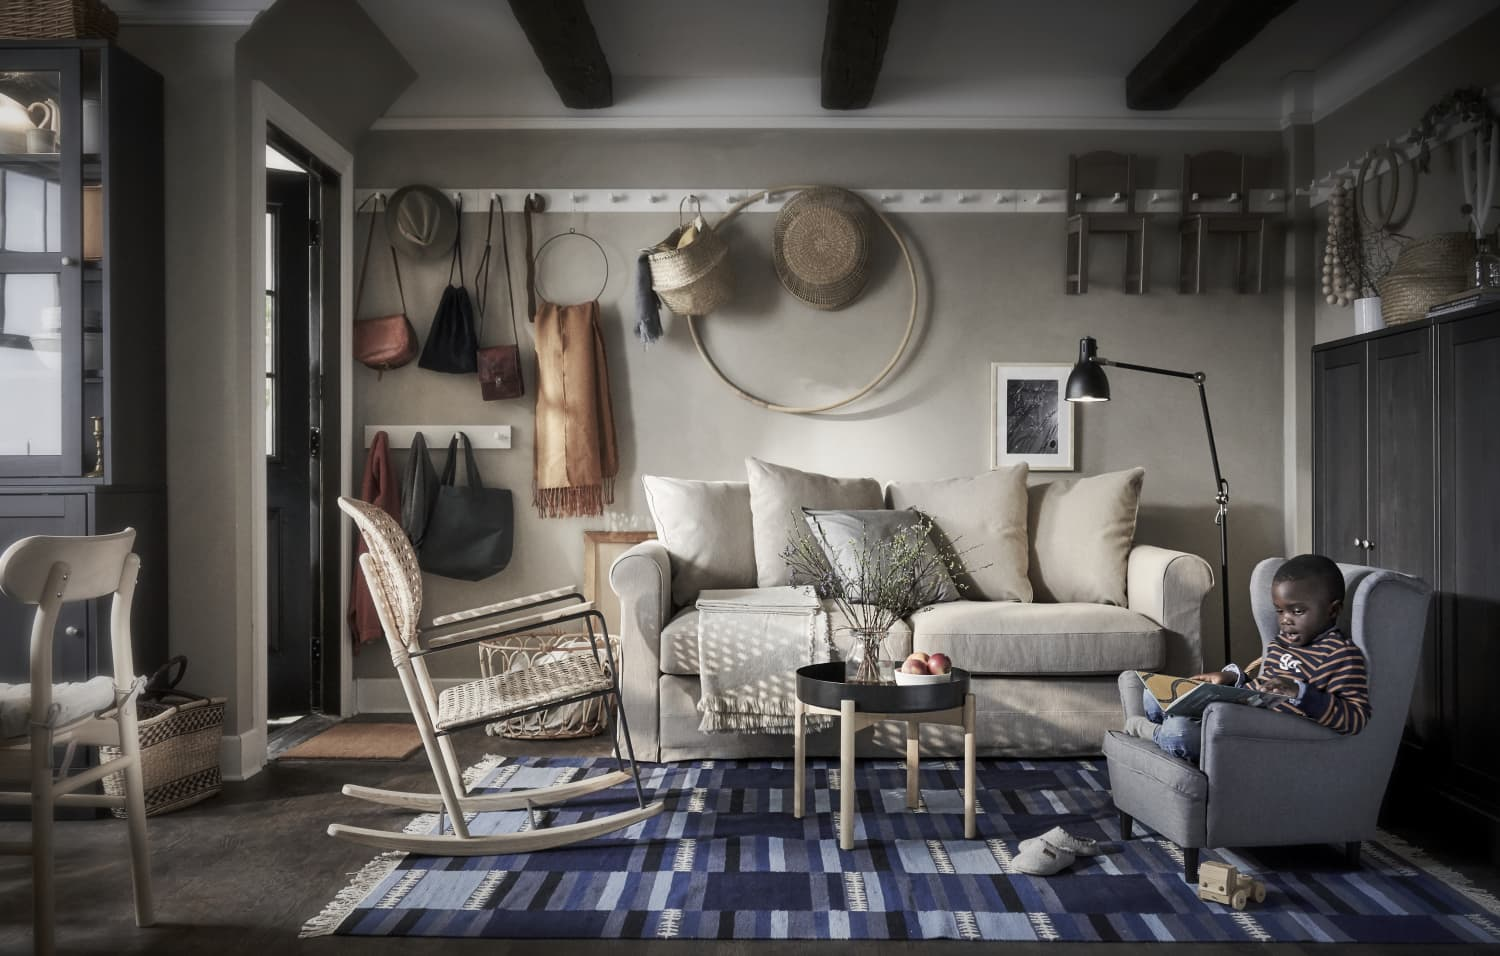 7 Genius Small Space Organizing Tips to Steal from the 2020 IKEA Catalog